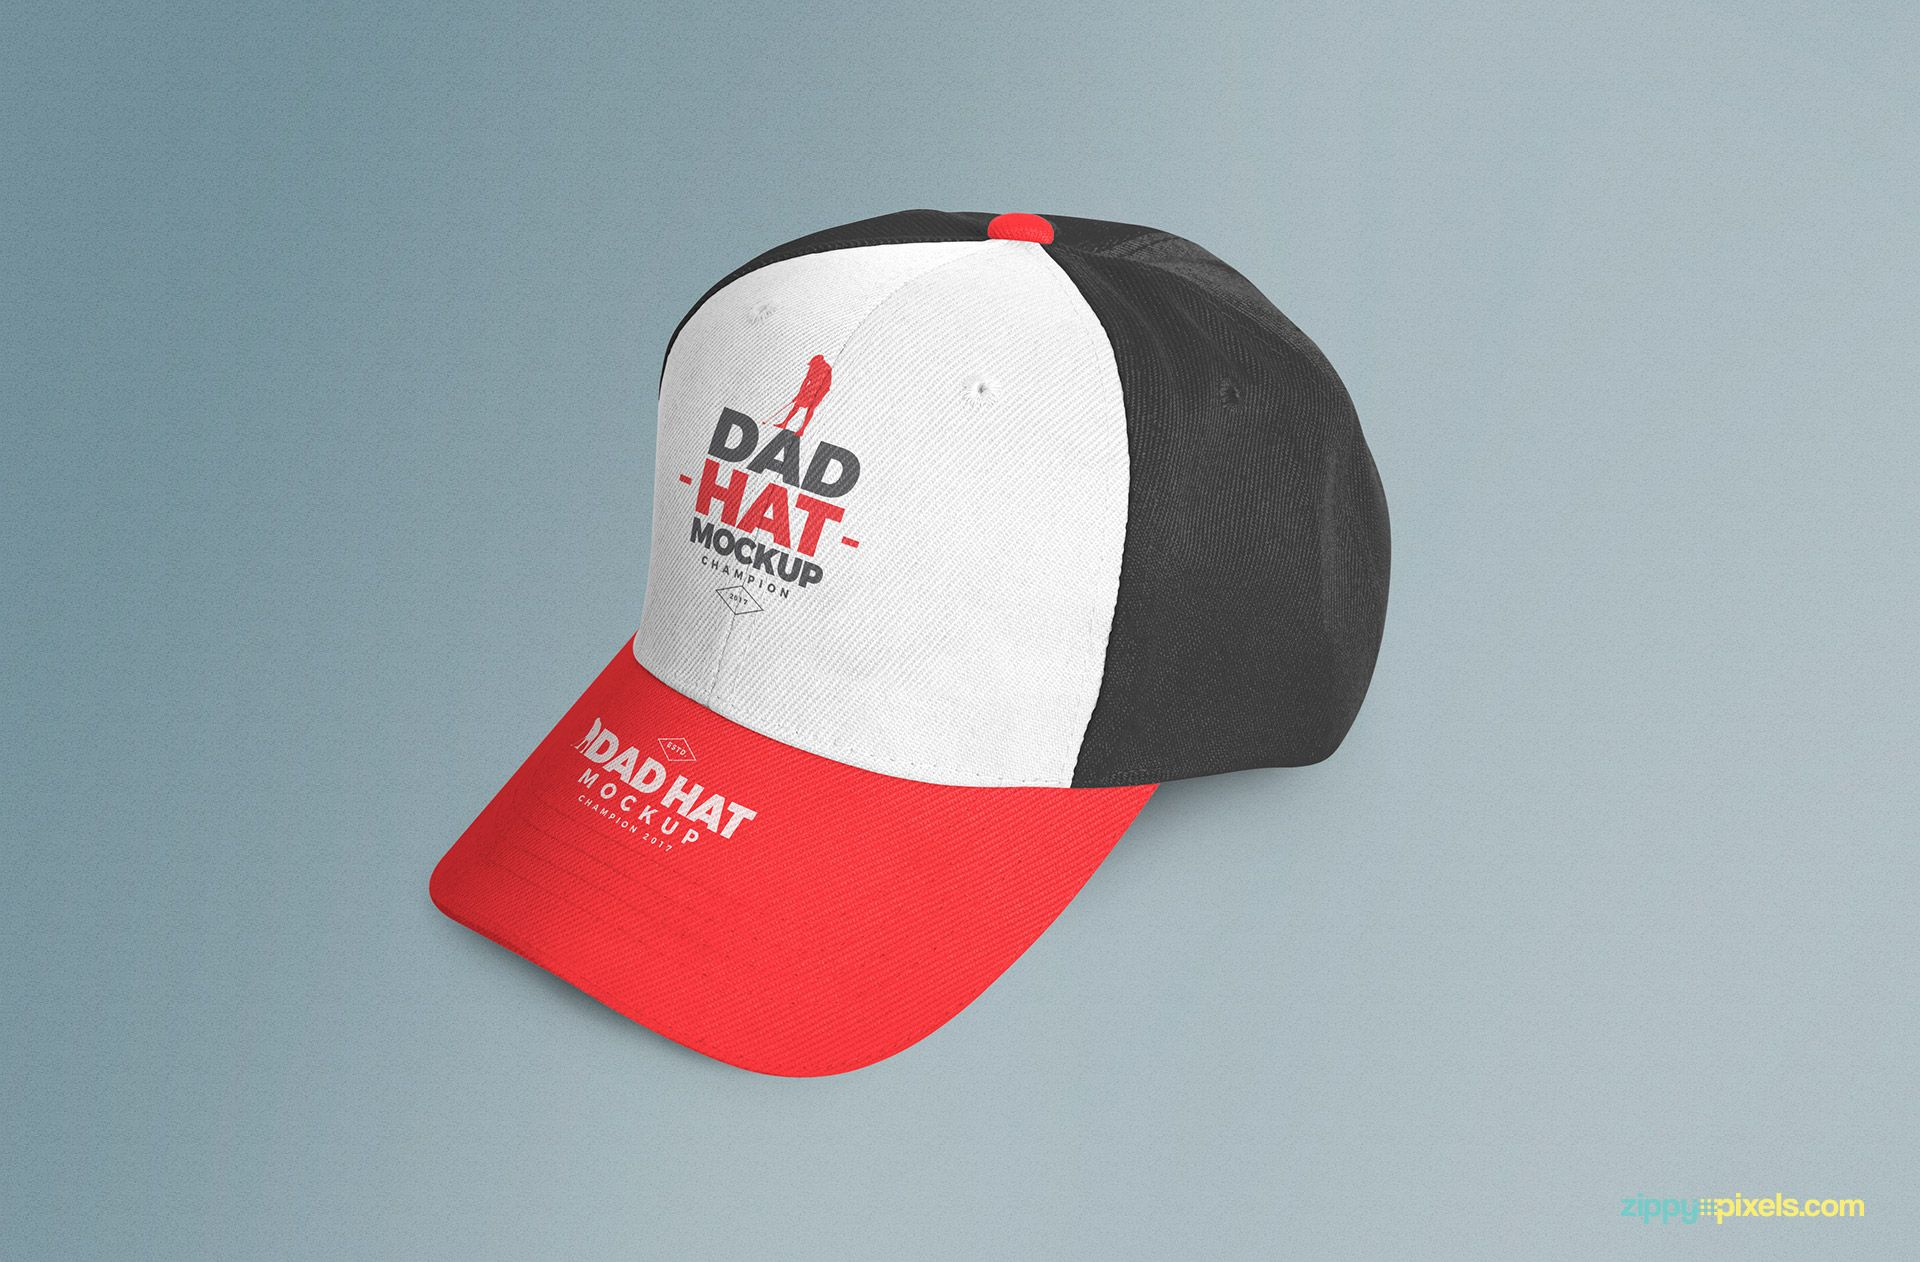 Customizable Free Dad Hat Mockup Psd Zippypixels Dad Hats Hats Photoshop Mockup Free